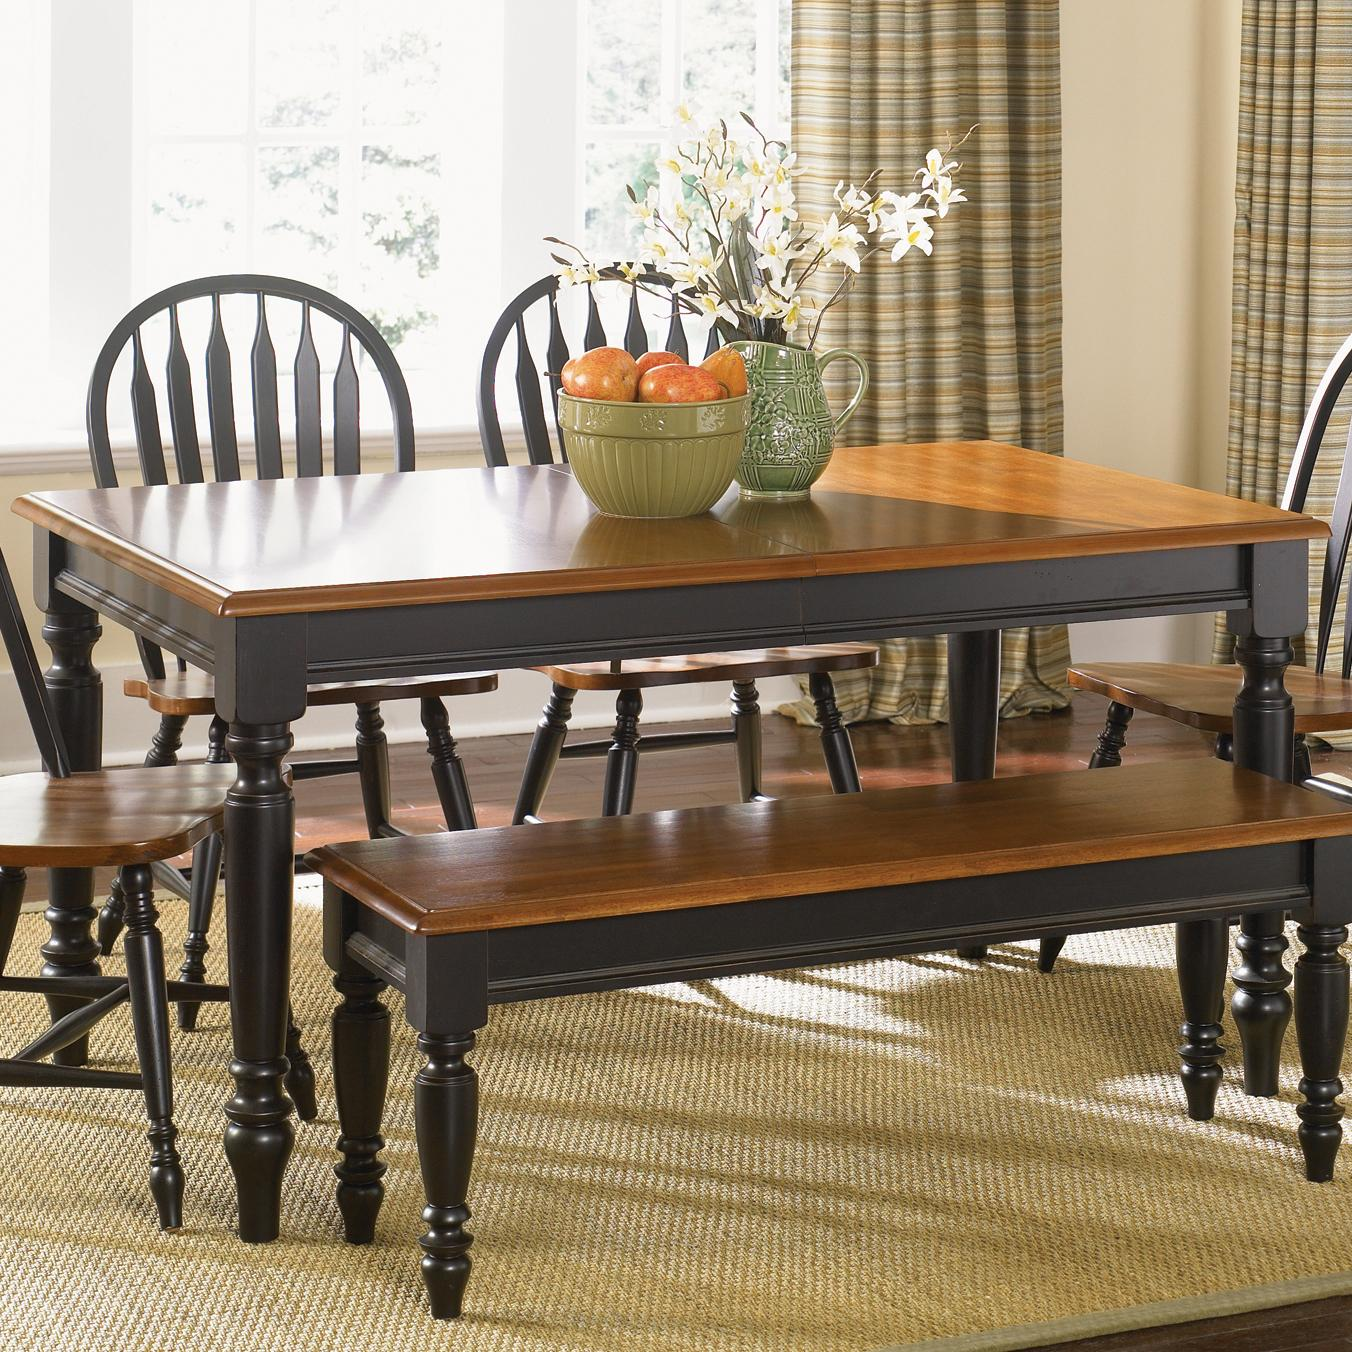 Rectangular Dining Table with Turned Legs by Liberty  : products2Flibertyfurniture2Fcolor2Flow20country80 t3876 b from www.wolffurniture.com size 1352 x 1352 jpeg 343kB